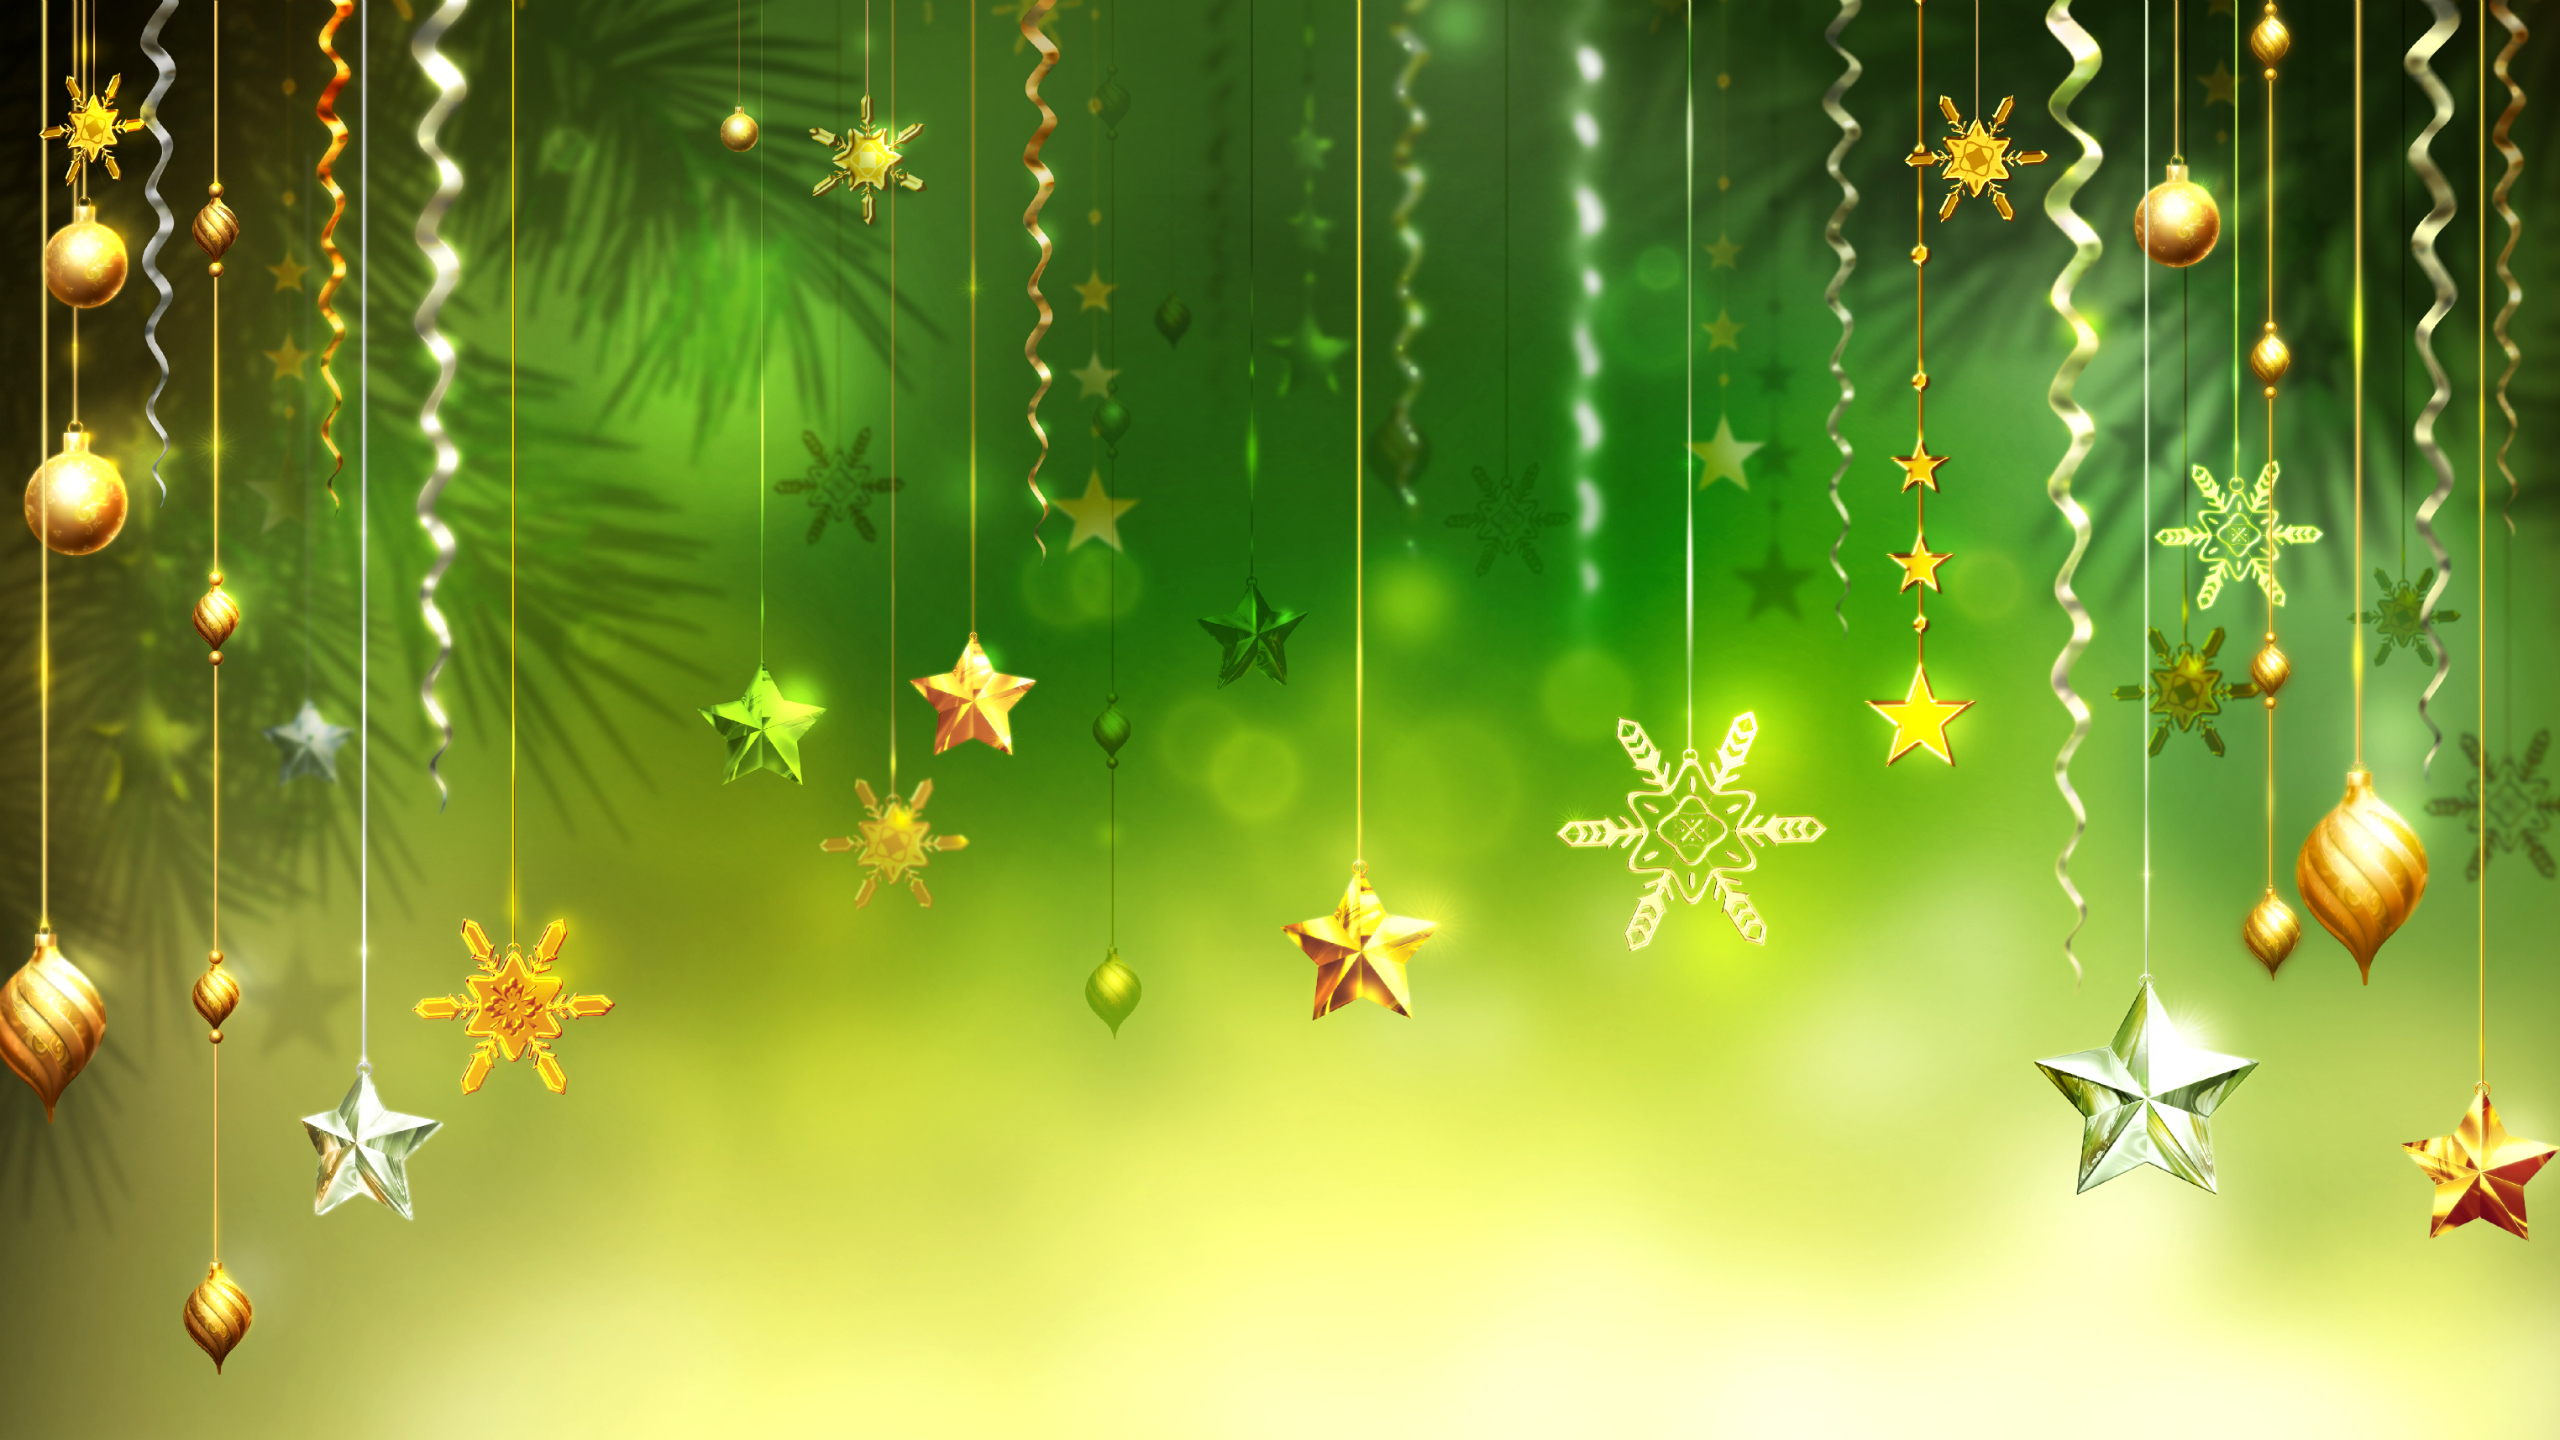 Merry Christmas - Christmas Wallpaper (32790436) - Fanpop fanclubs